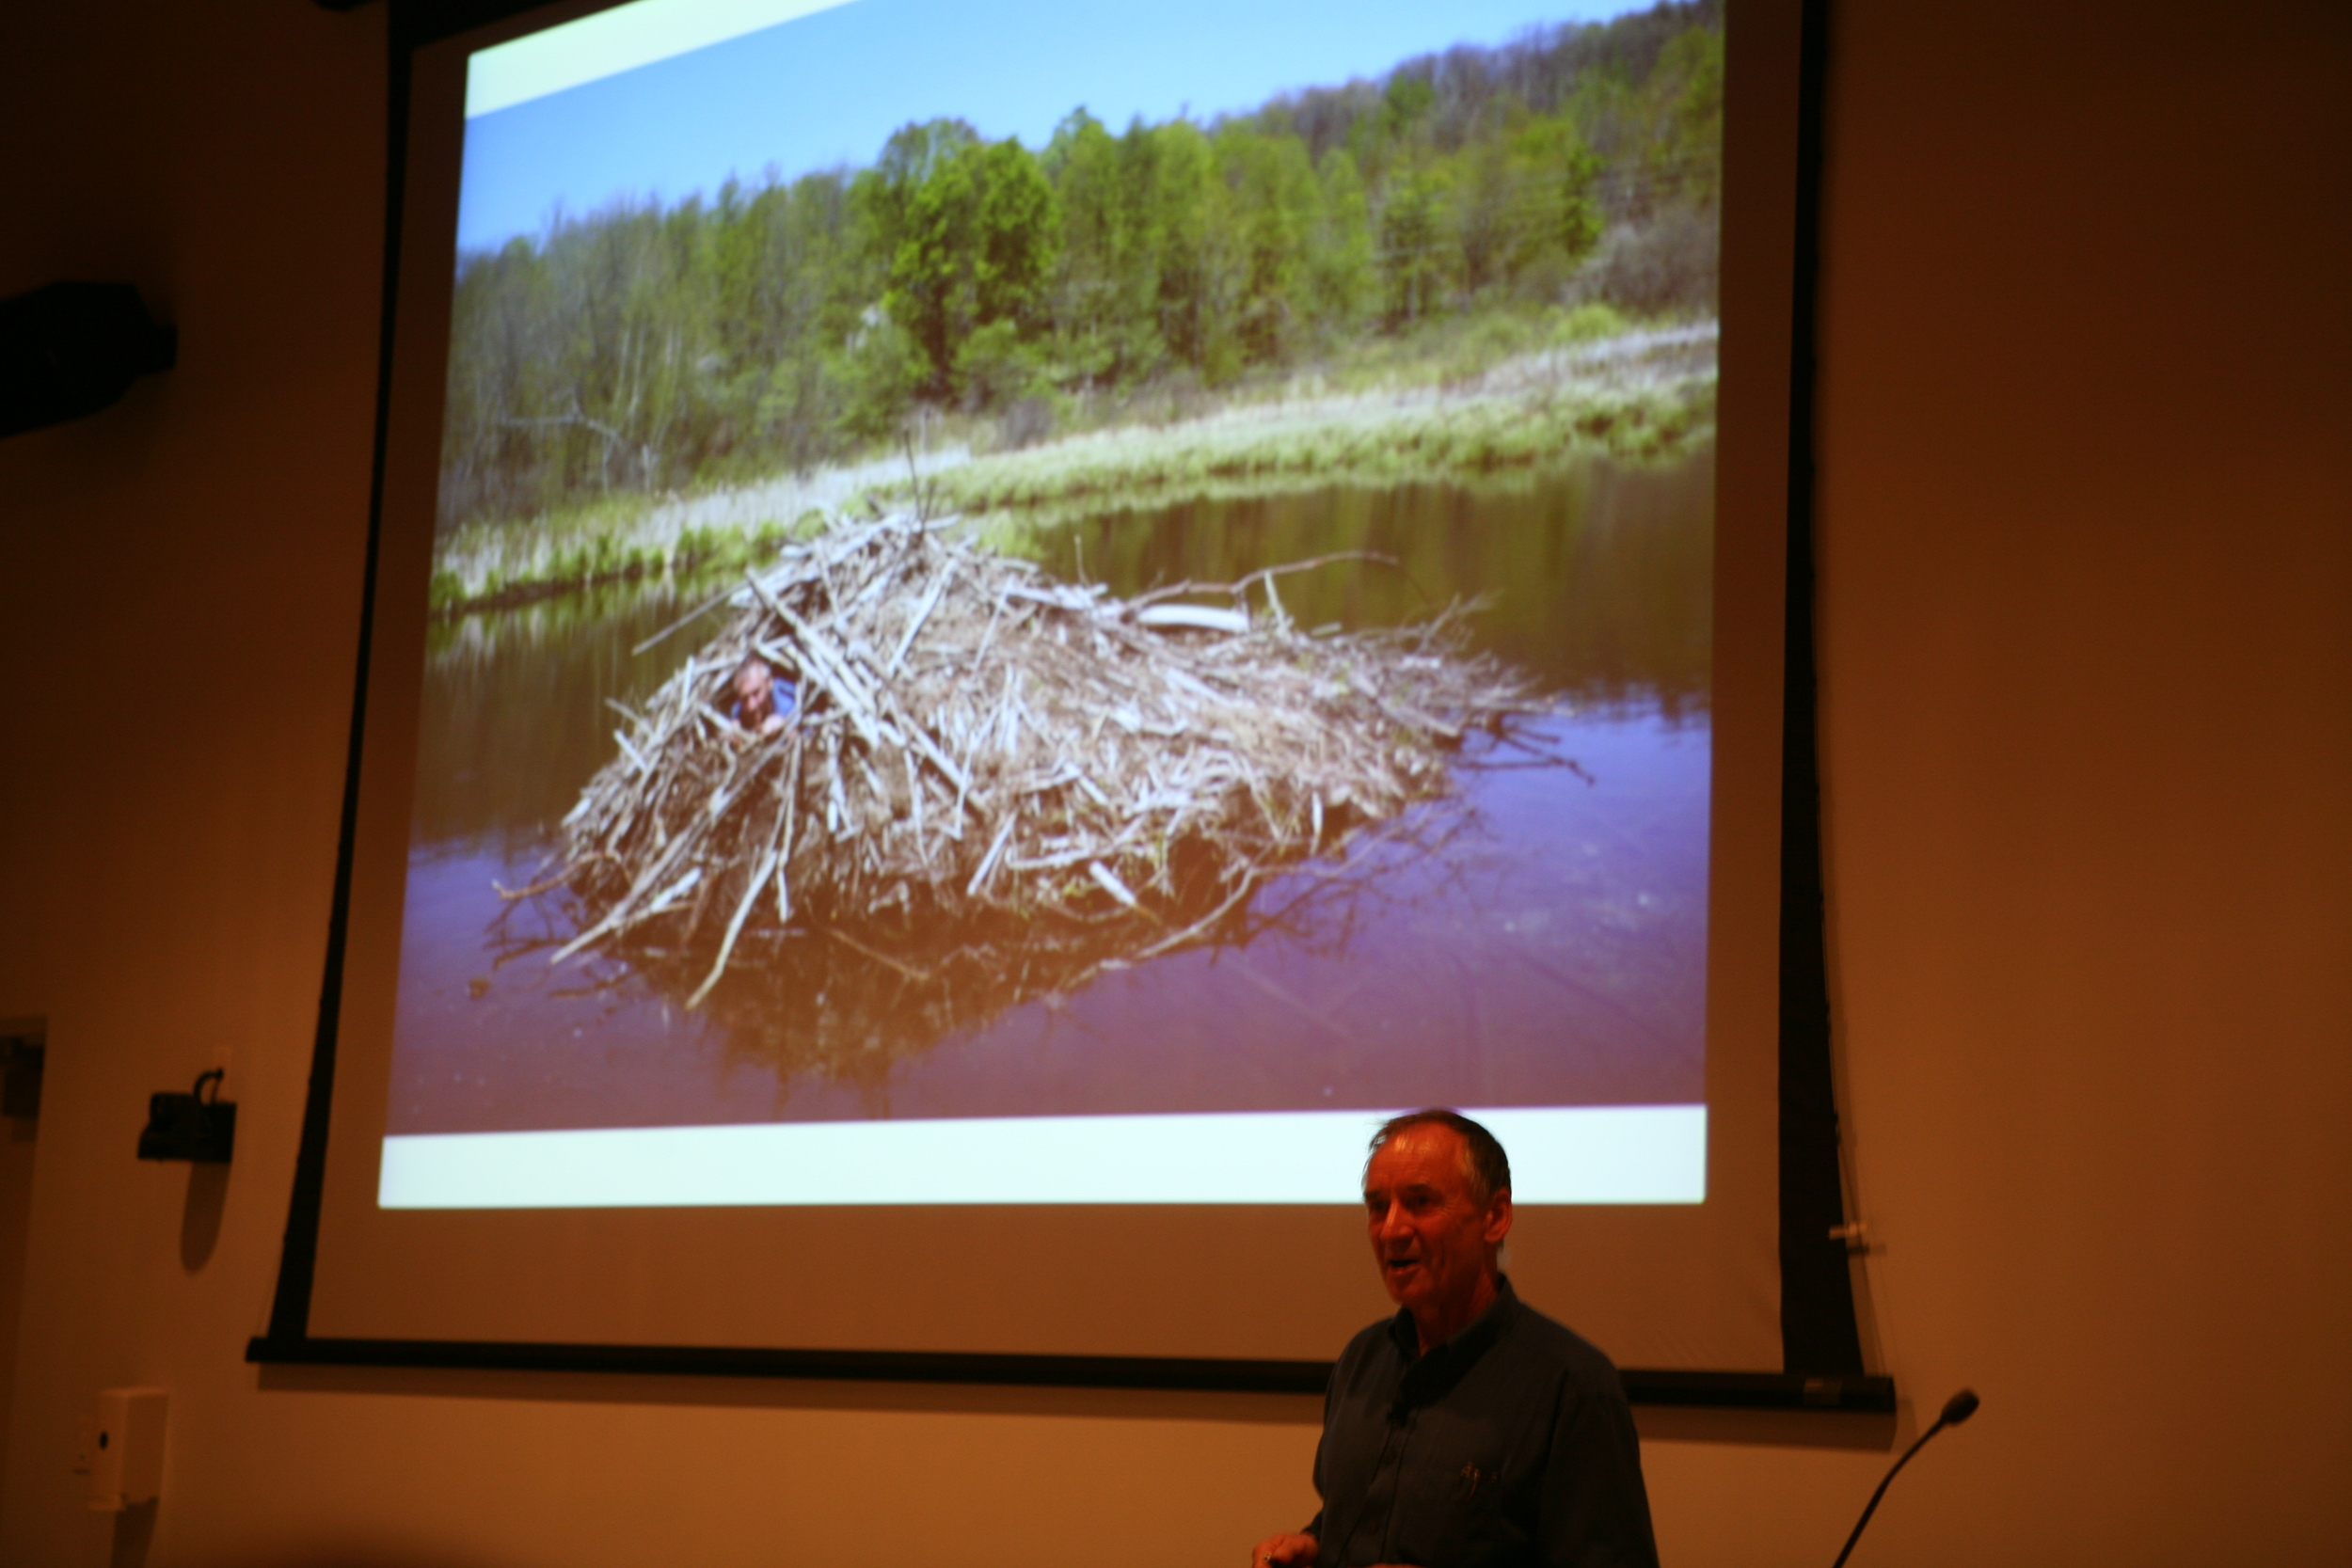 Bernd's talk at the Schoodic Education and Research Center (SERC) Institute drew a full house. Yes, that's Bernd's head popping out of the beaver lodge in the slide. He'll go anywhere to learn how nature works.